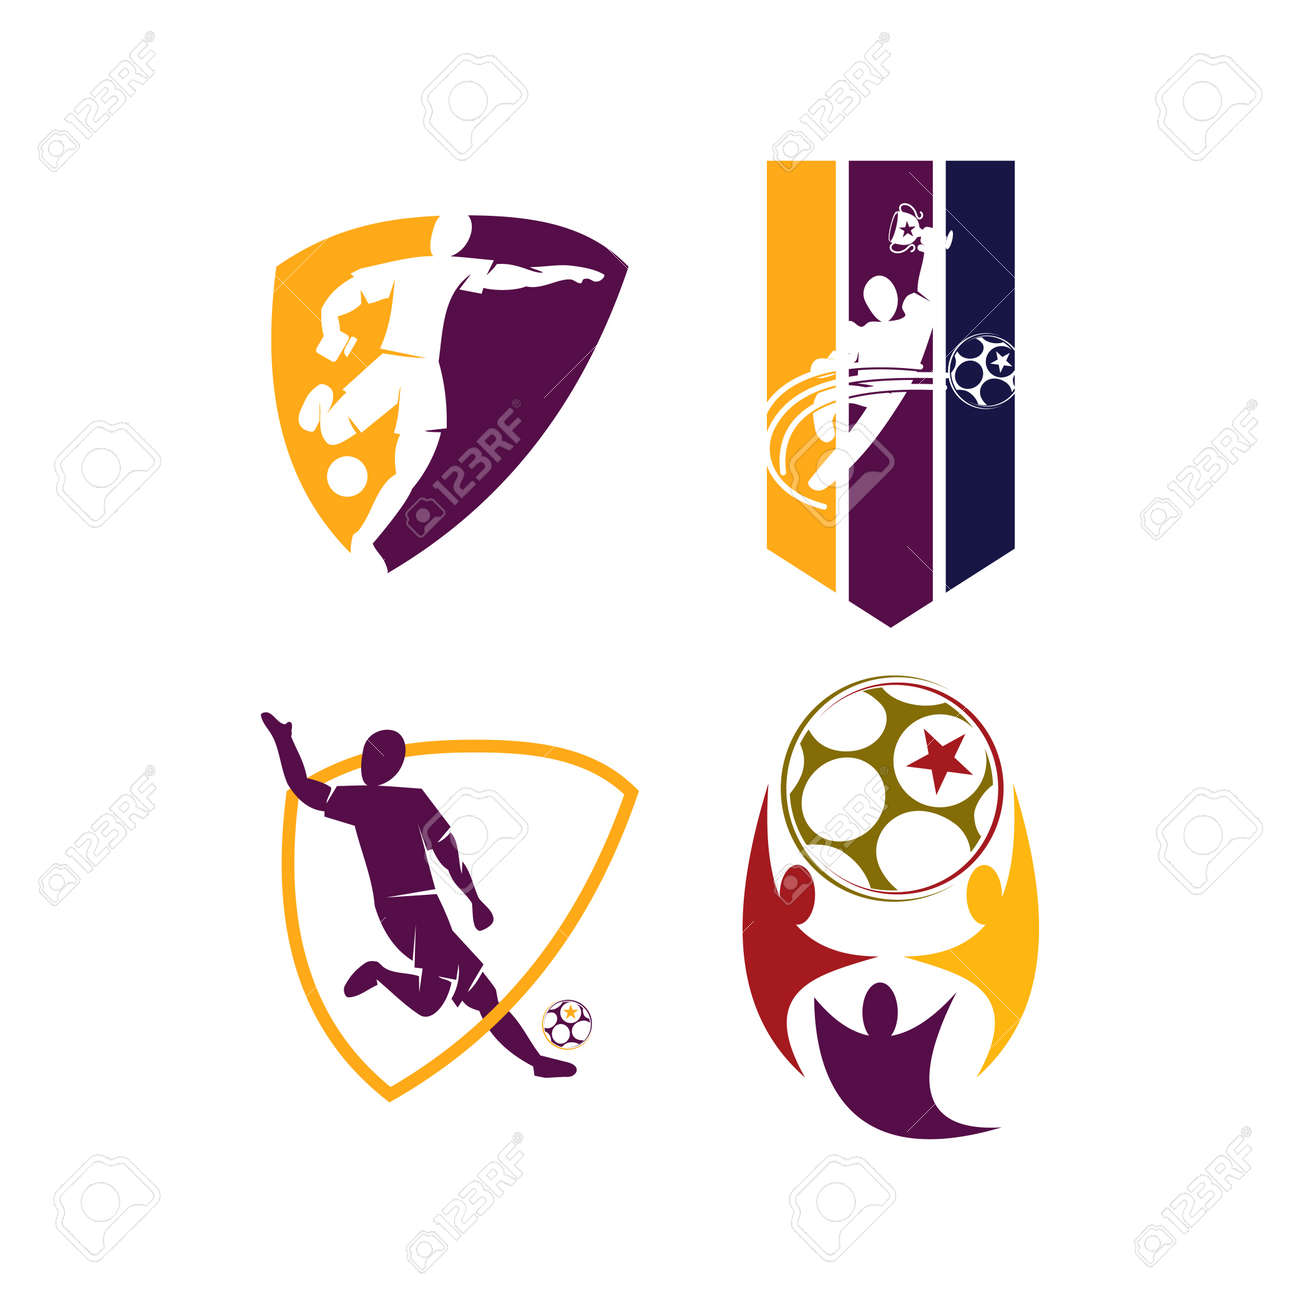 Soccer Football Badge Logo Design Templates Sport Vector Royalty Free Cliparts Vectors And Stock Illustration Image 128951717